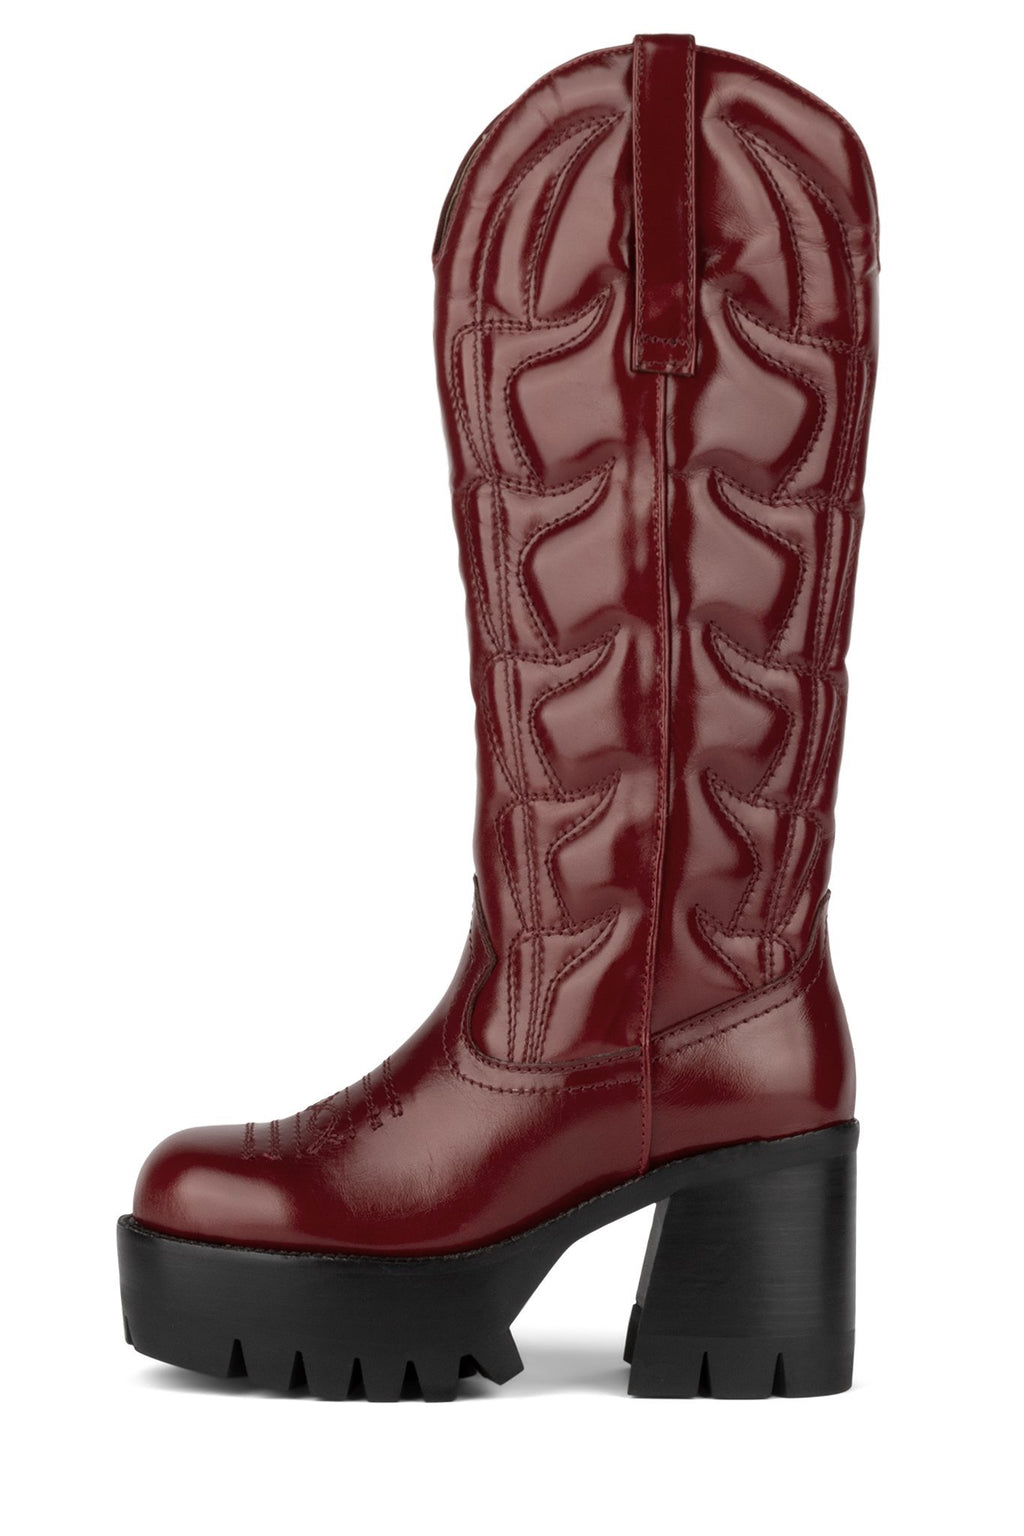 HONKY-TONK Knee-High Boot Jeffrey Campbell Red 6